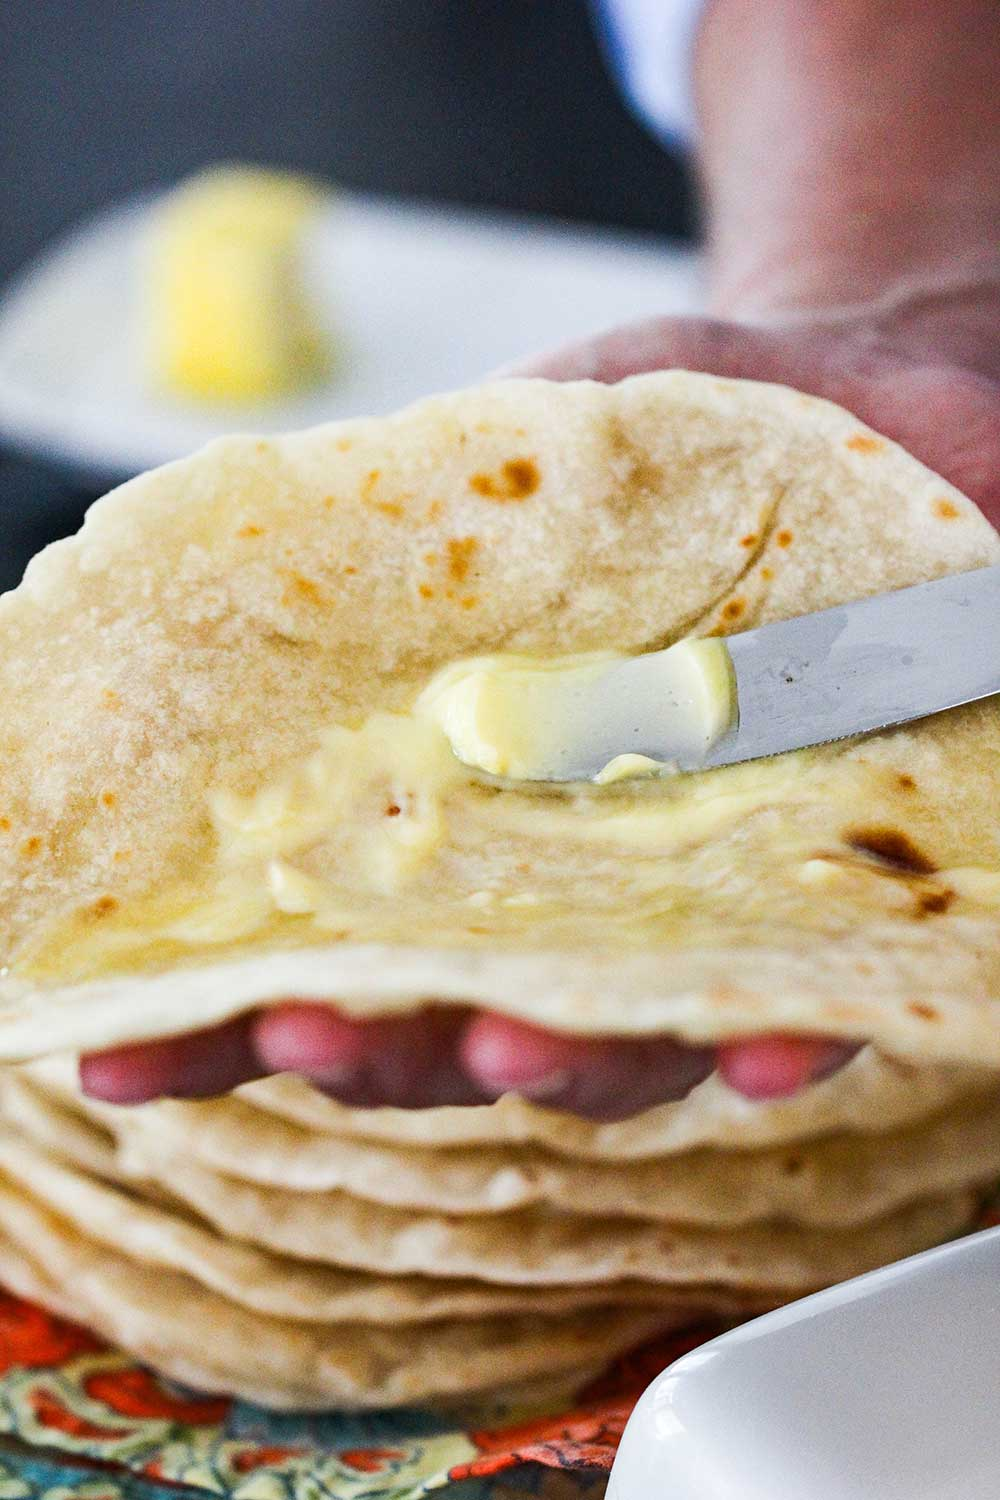 A knife spreading butter onto a warm homemade flour tortilla.